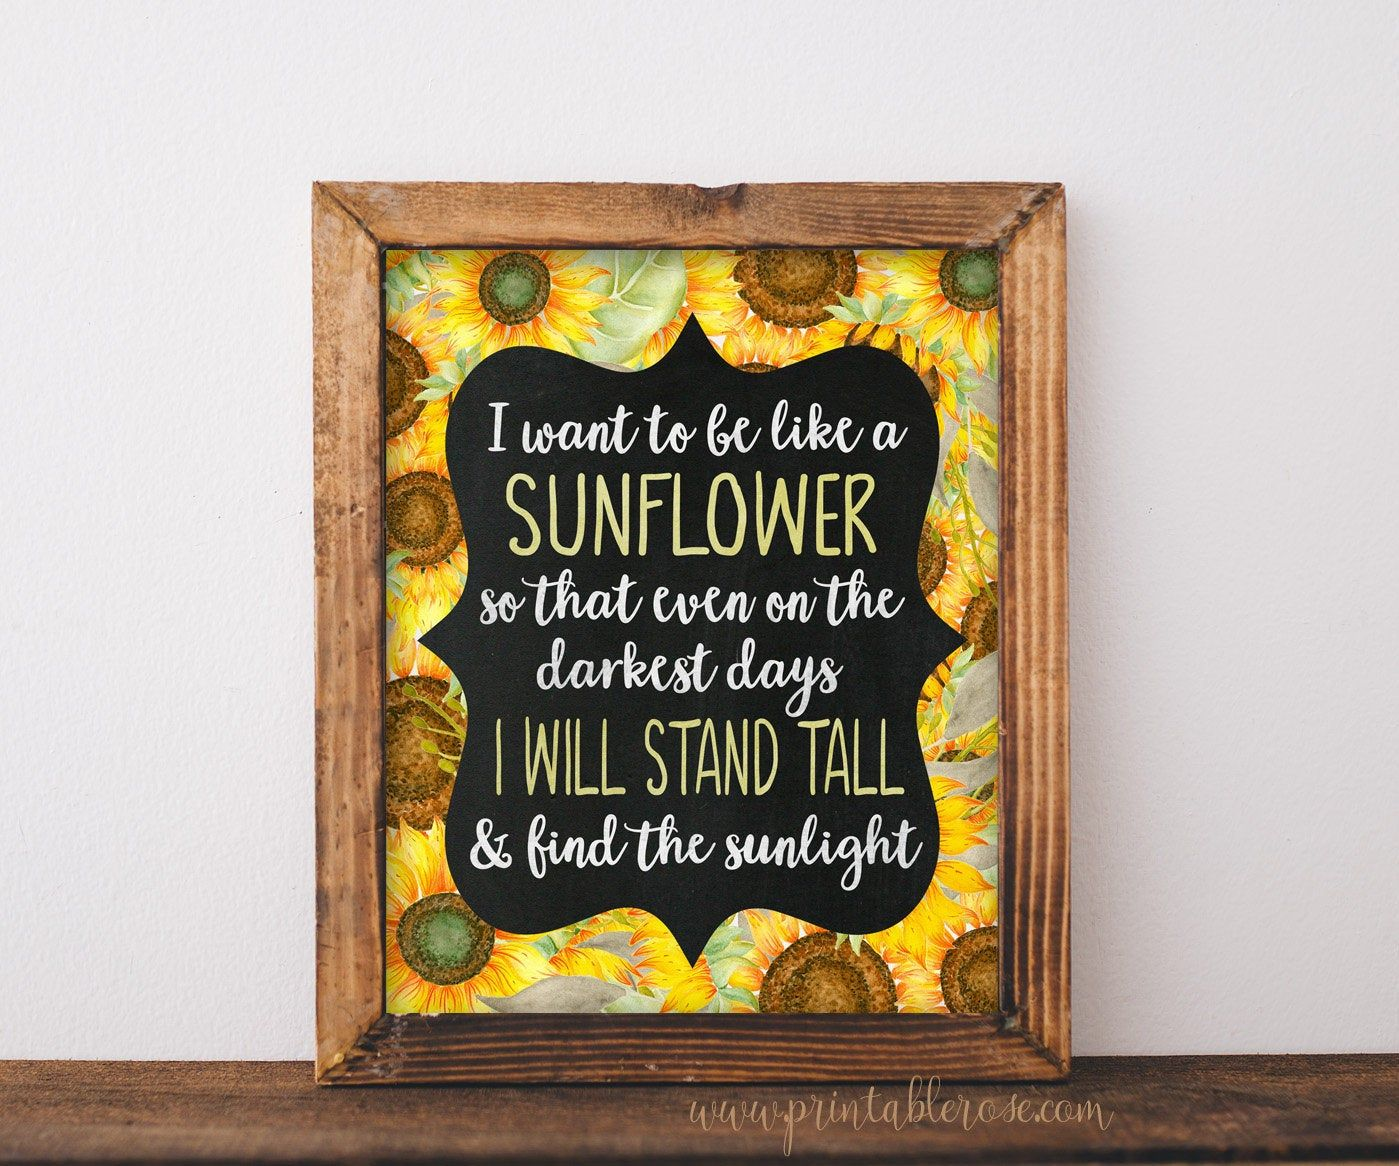 Sunflower Decor, sunflower printable, sunflower print, sunflower wall decor, sunflower wall art, inspirational, sunflower digital, sunflower